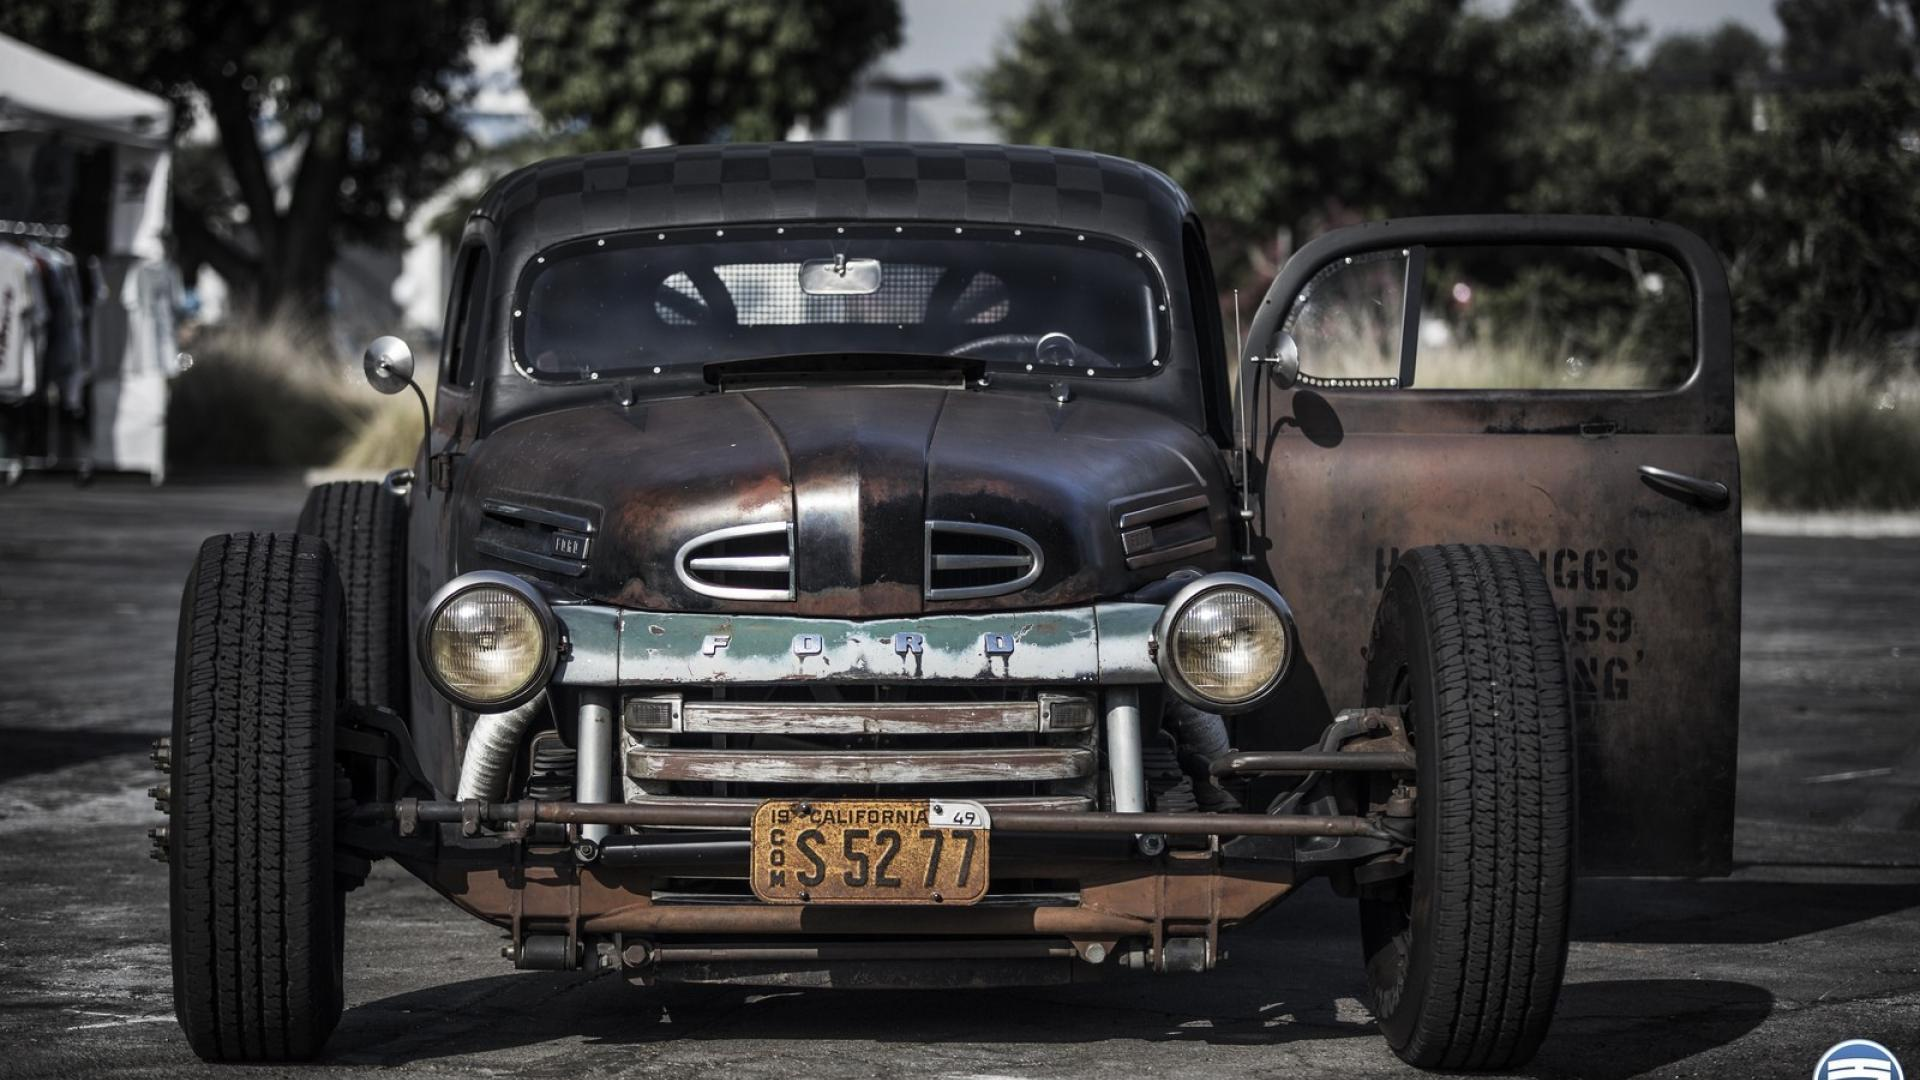 Ford hot rod classic cars old truck wallpaper 81612 1920x1080